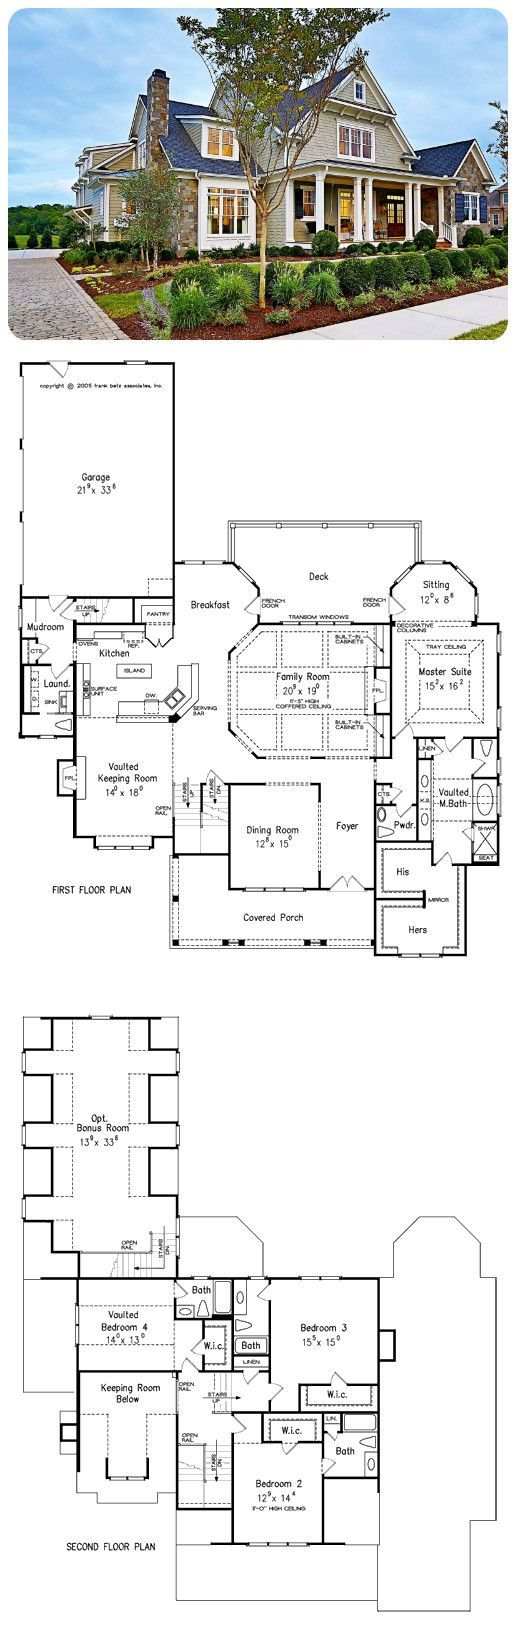 #house #design #home #love #architecture #inspiration #interiors #exteriors #simple #designer #homeinspiration #floorplan #layout #conceptualdesign #architecturalplans